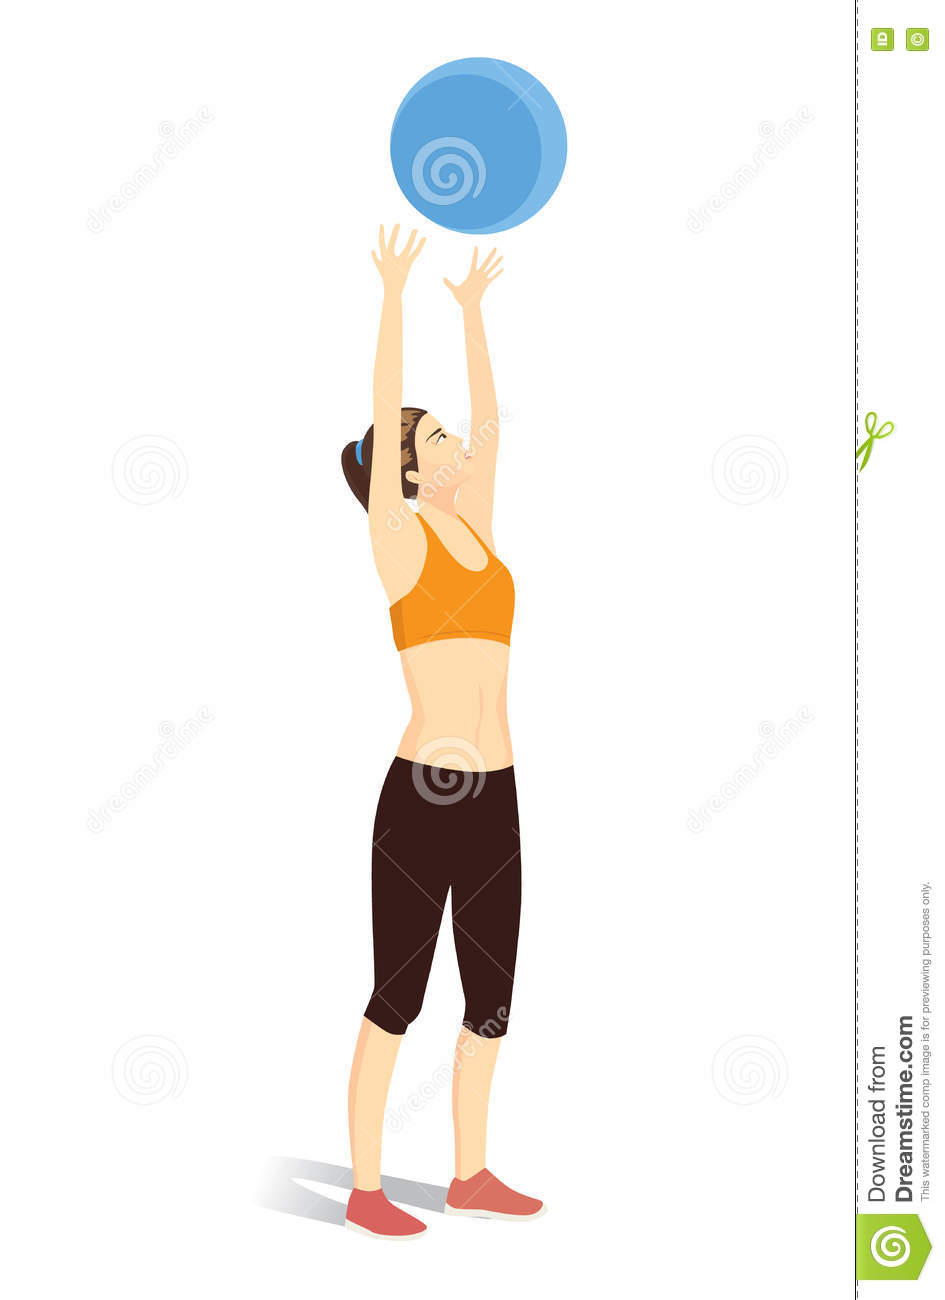 Woman throwing fitness ball into the air.